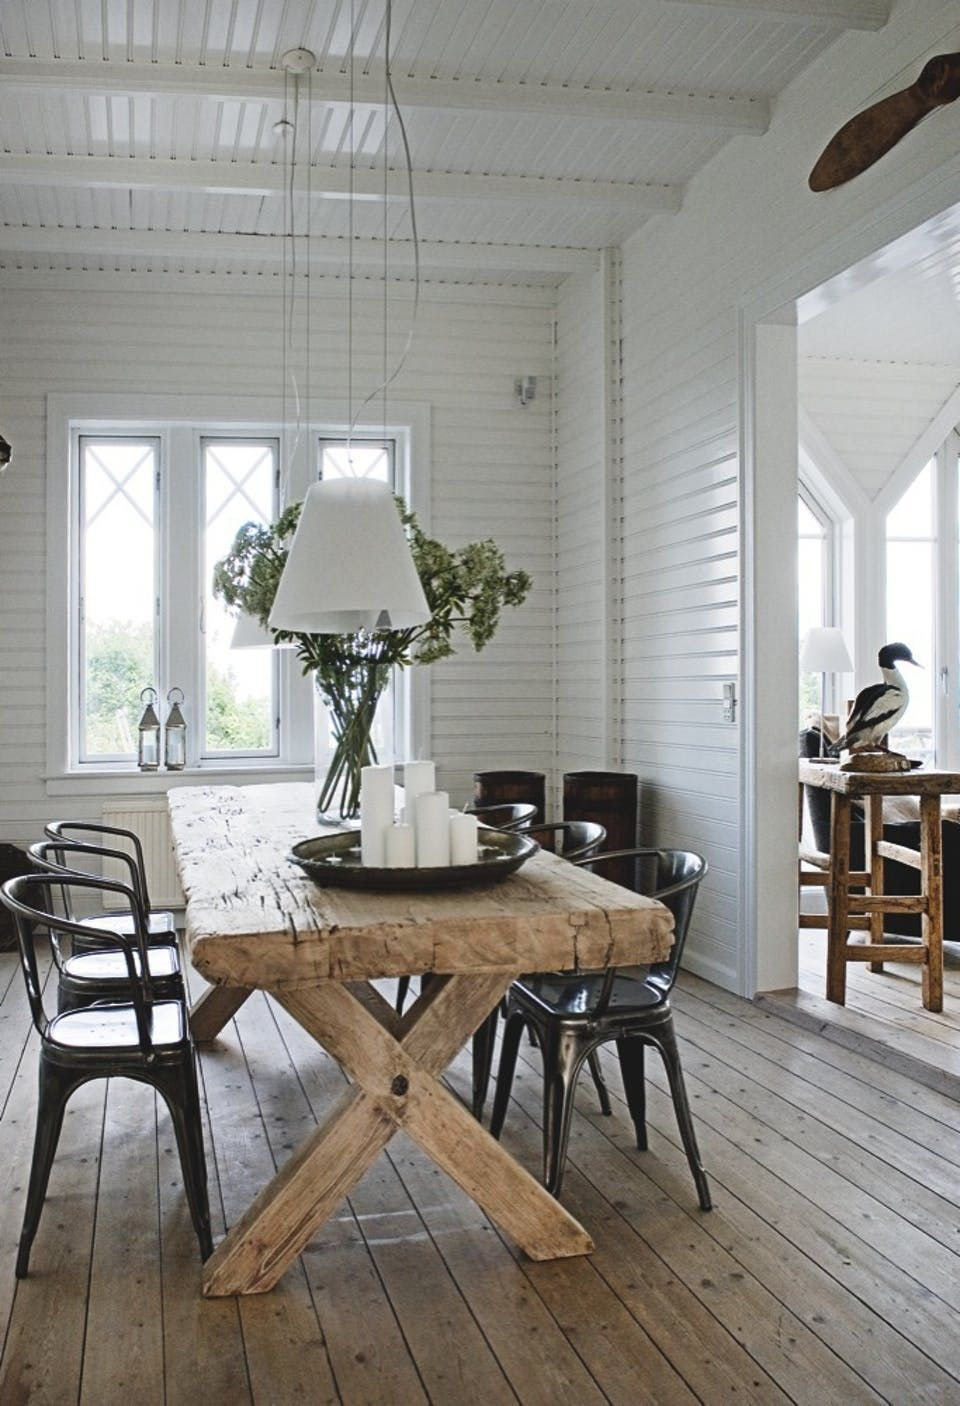 nordic dining table industrial spectacular nordic dining room with large raw wooden table from rosmosegaard antik the industrial tolix chairs fil de fer give beautiful et norsk sommerhus danmark decorating rustic modern scandinavian